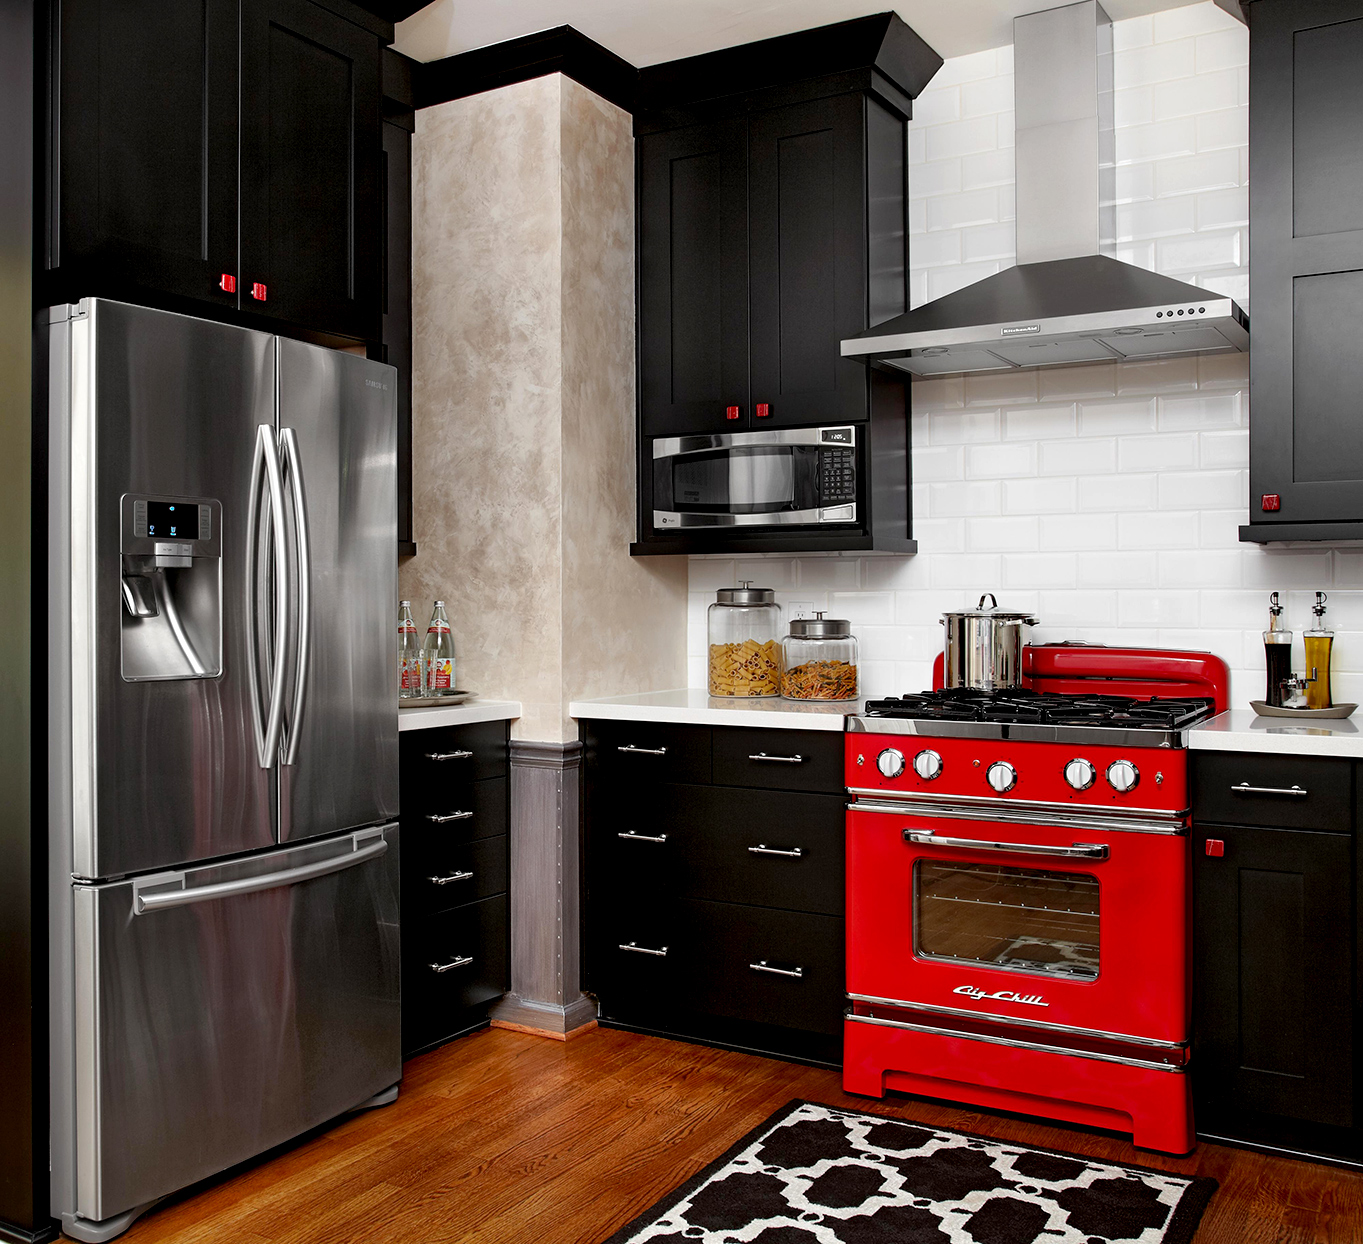 Kitchen in black, white and red in modern style